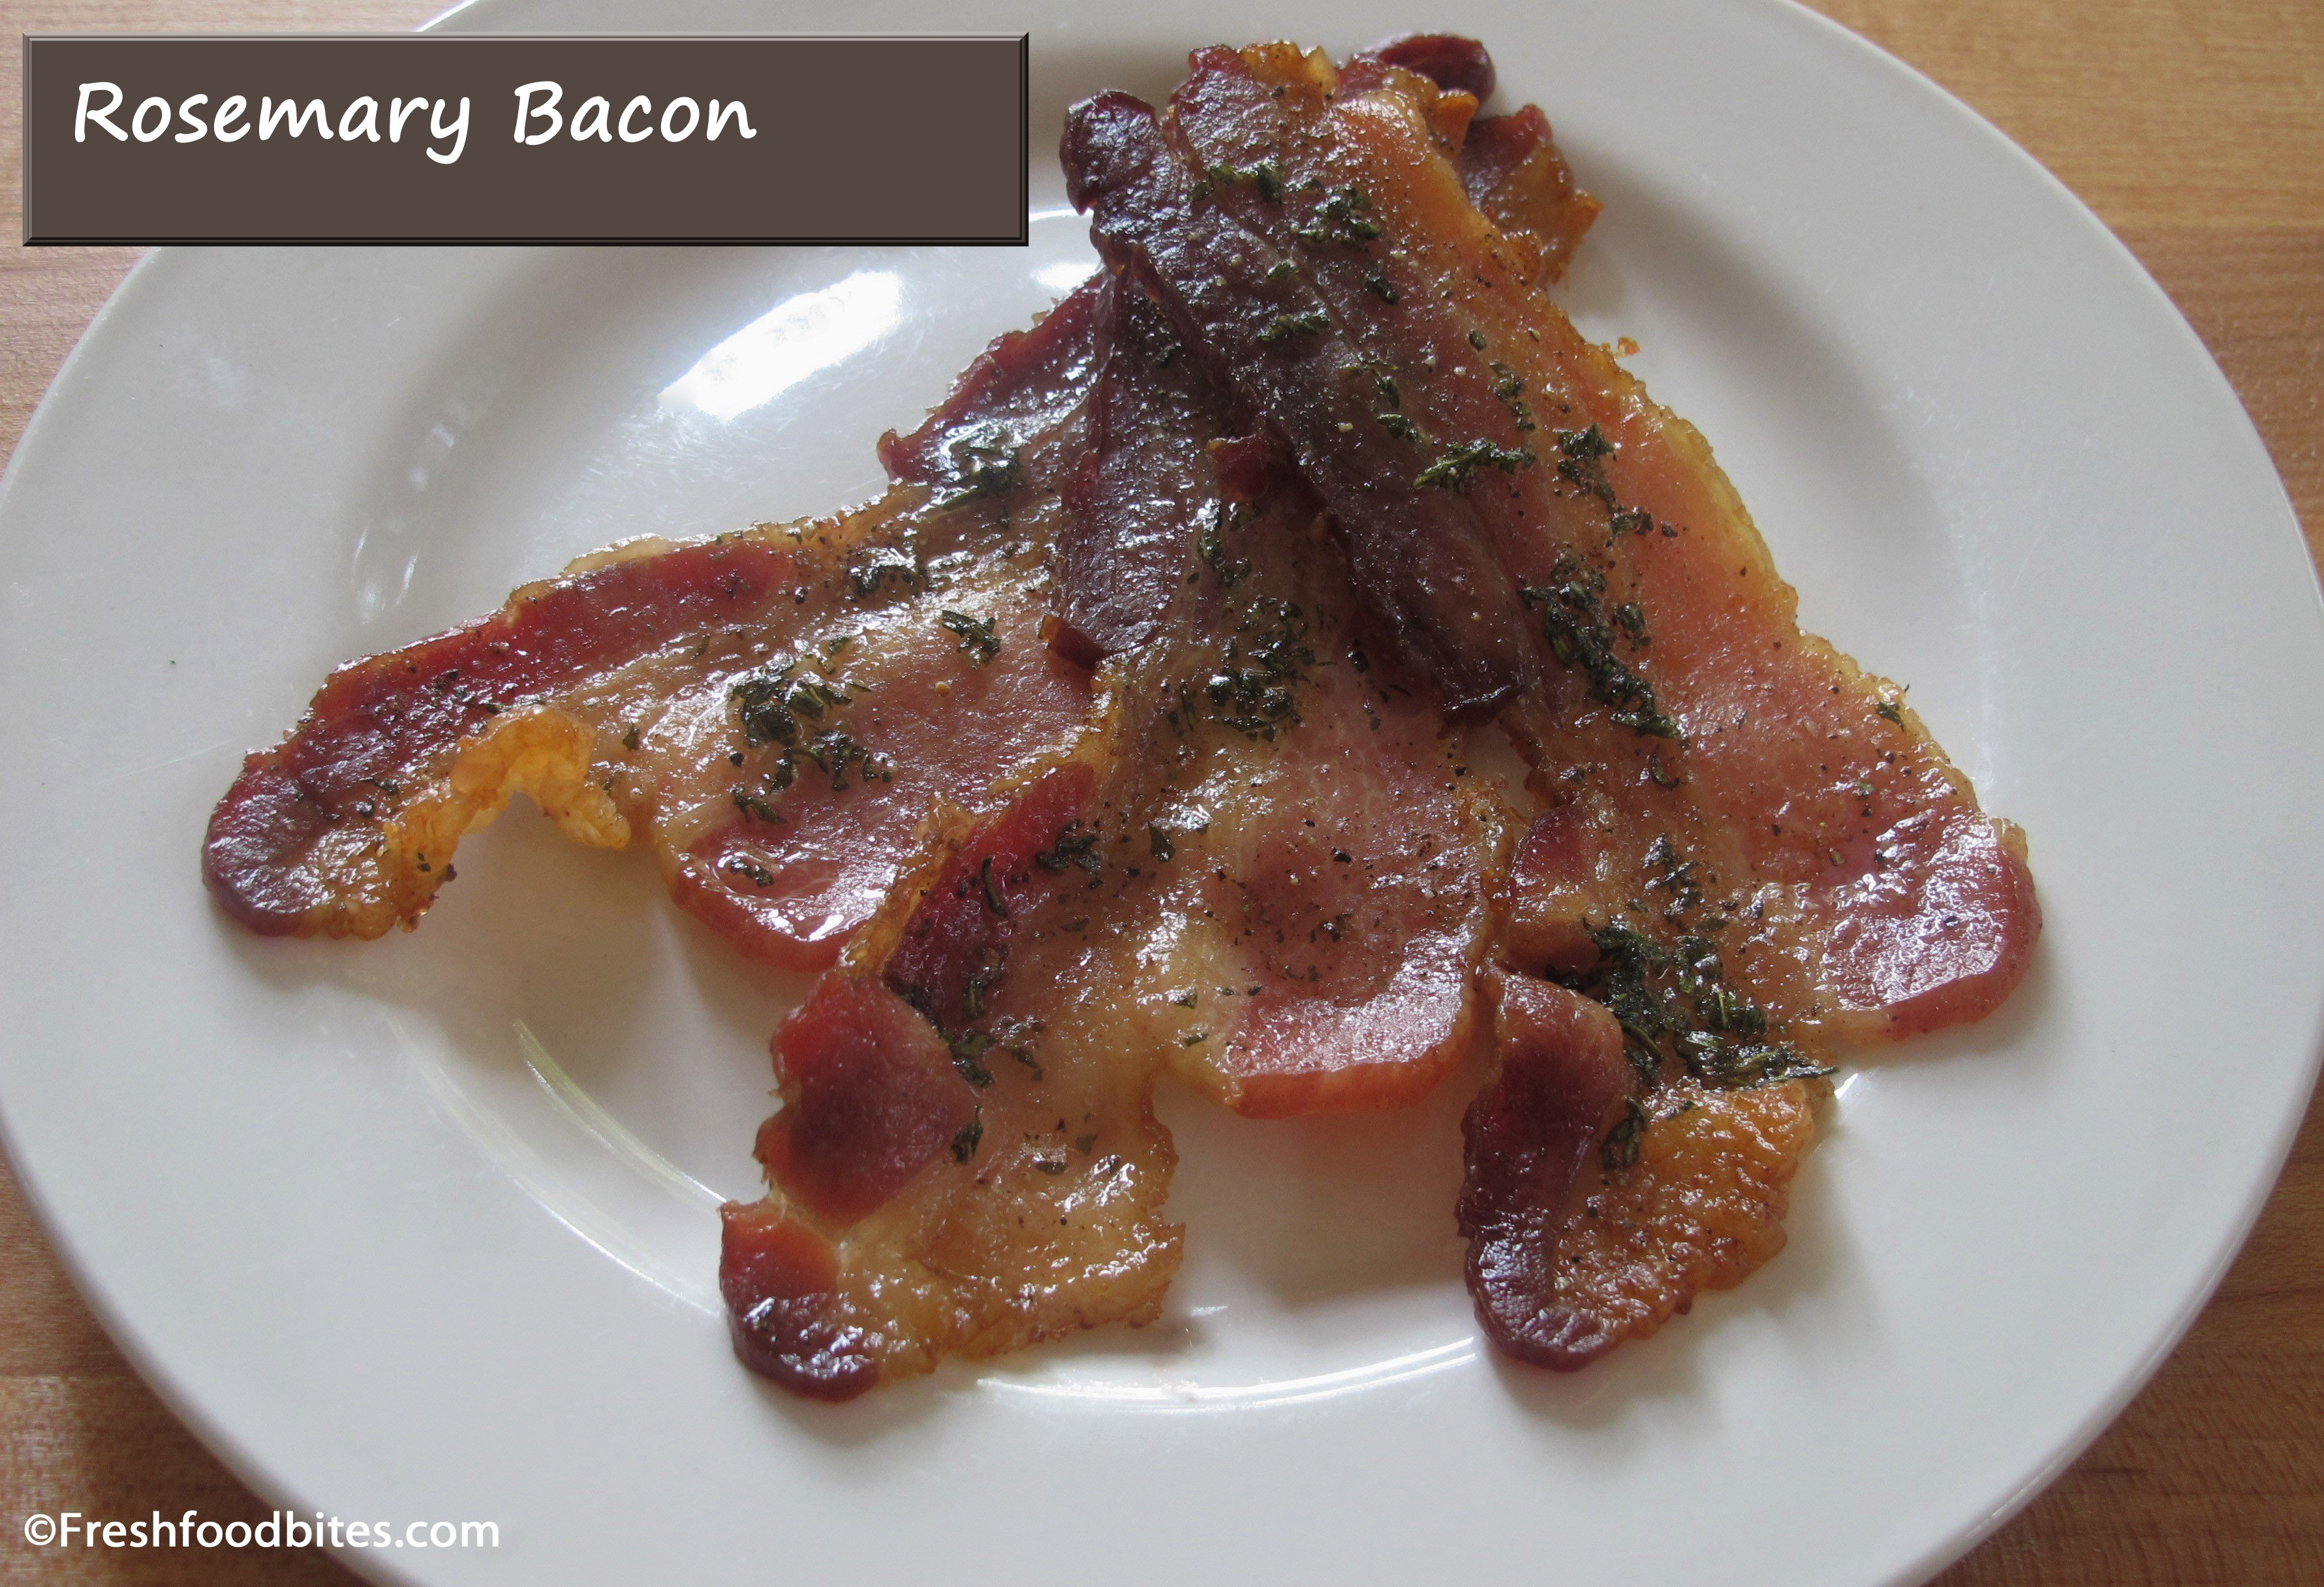 Take bacon to the next level by turning it into Rosemary Bacon. It's quick, easy, and your taste buds will thank you!